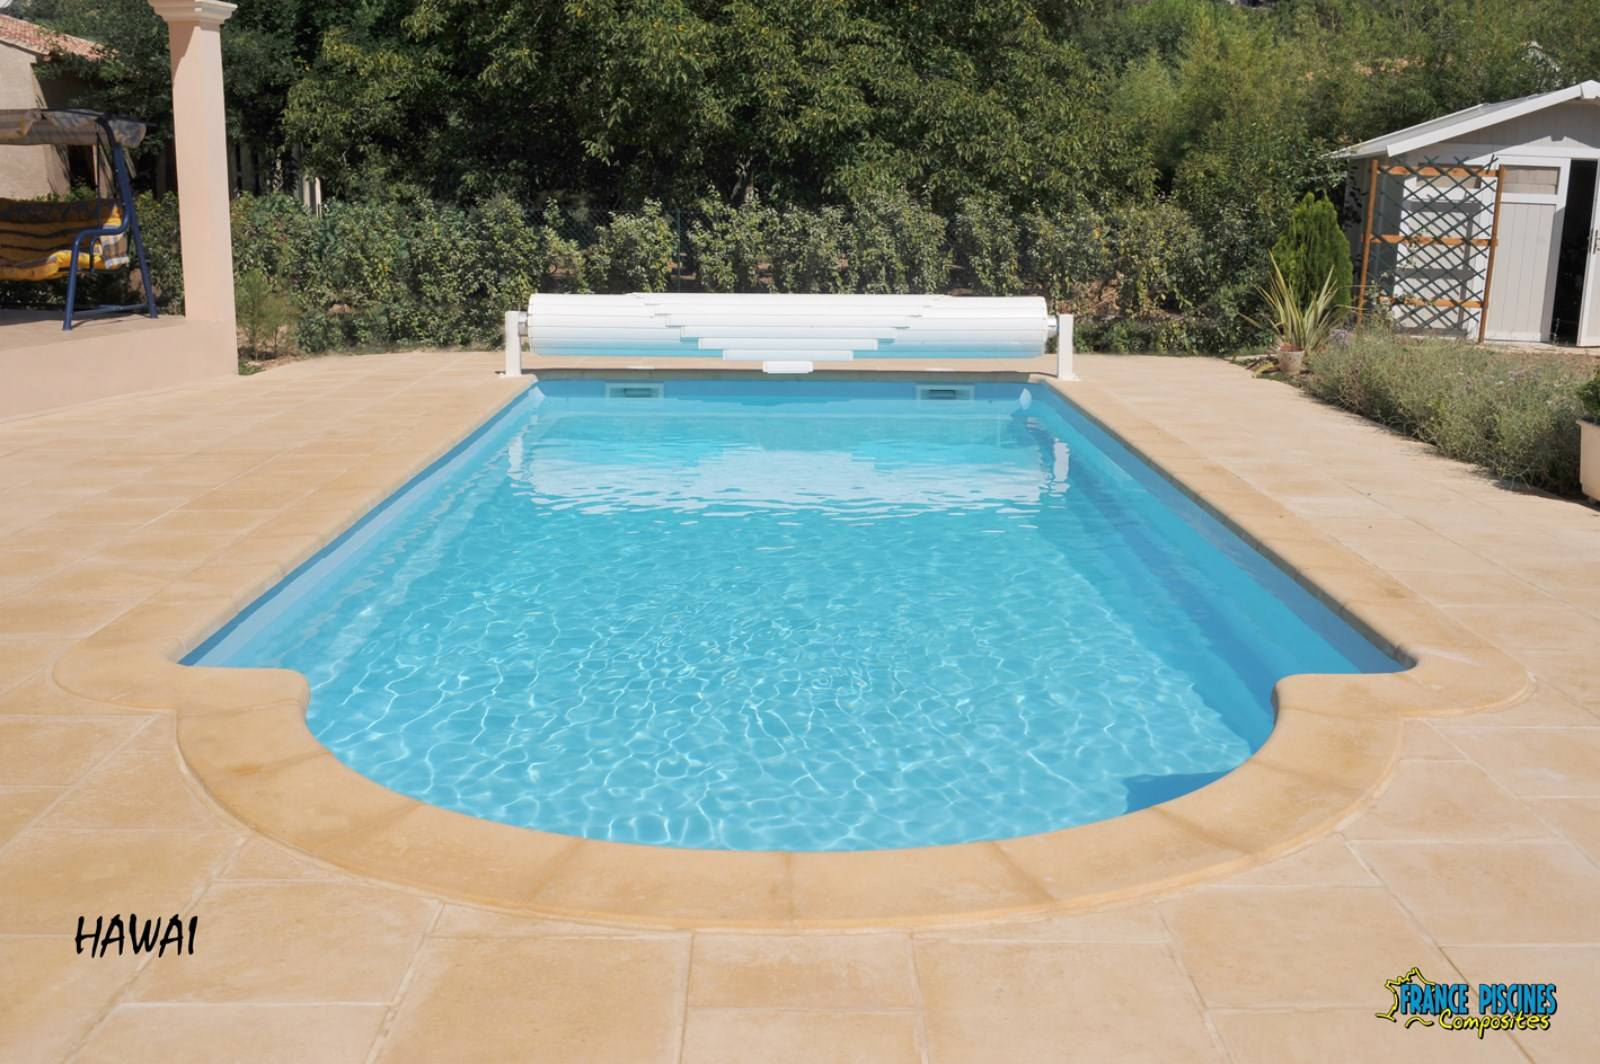 Vente et pose de piscine enterr e coque polyester for Piscine de menin tarif